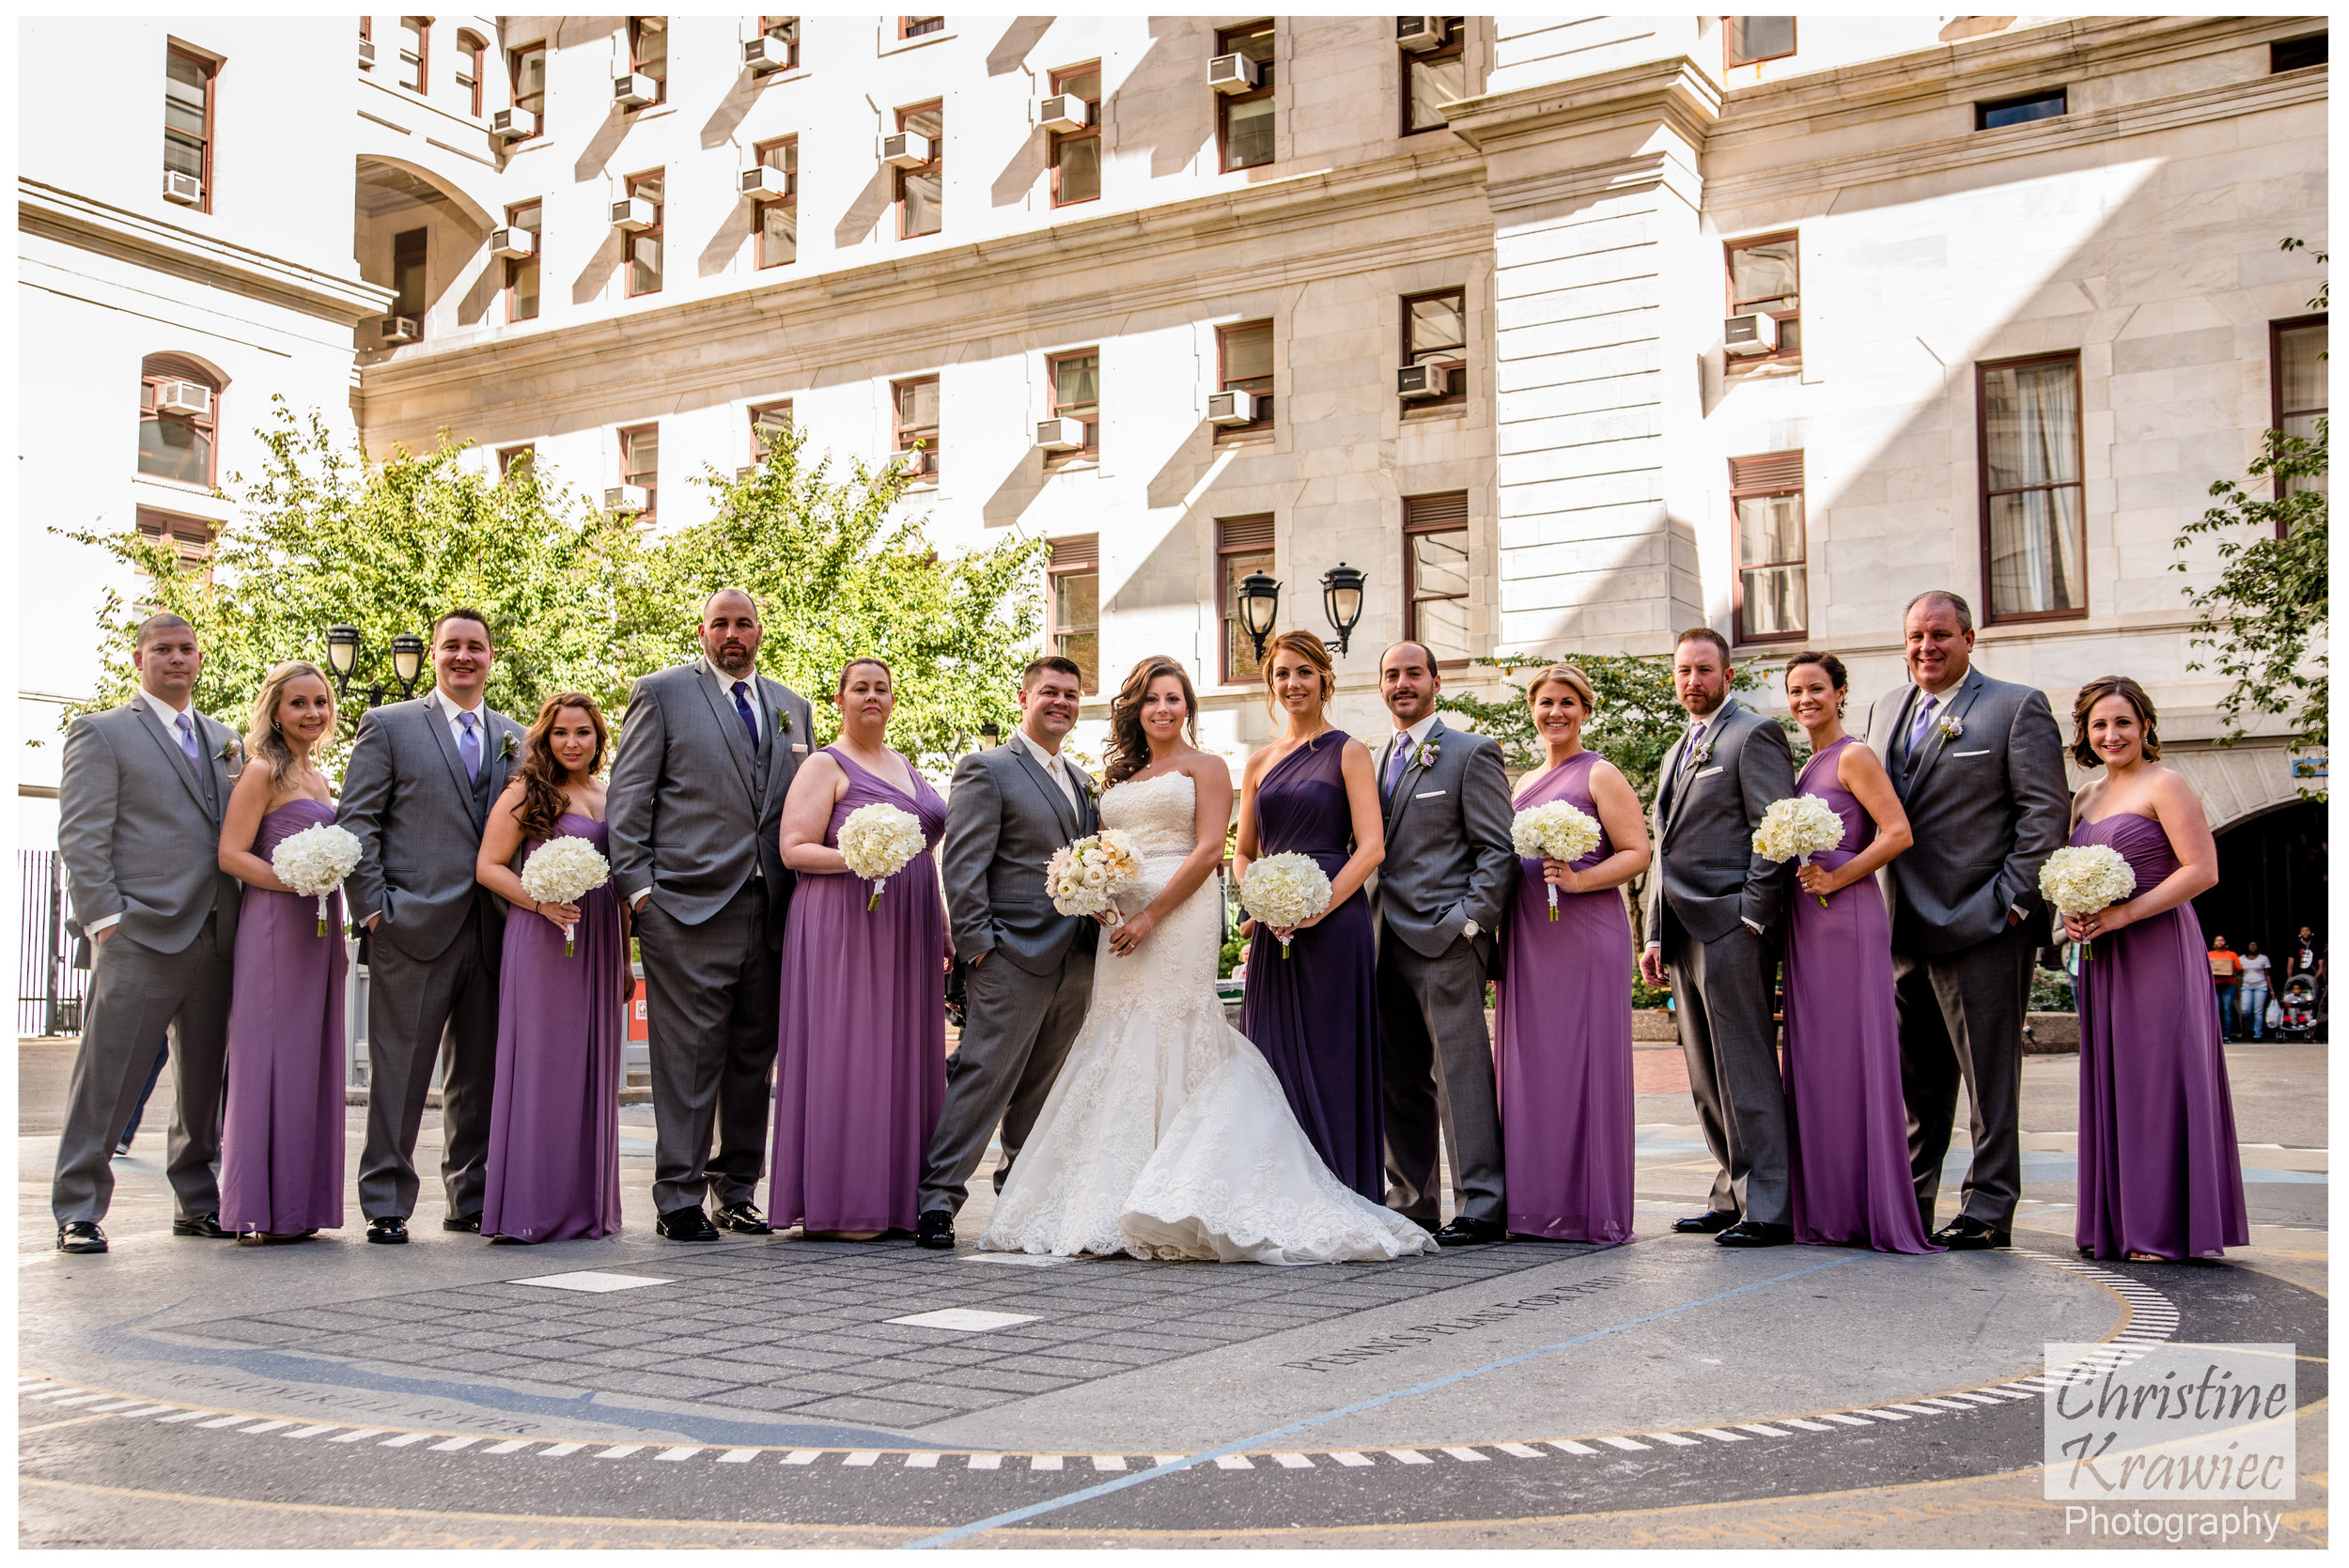 Bridal Party in the City Hall courtyard